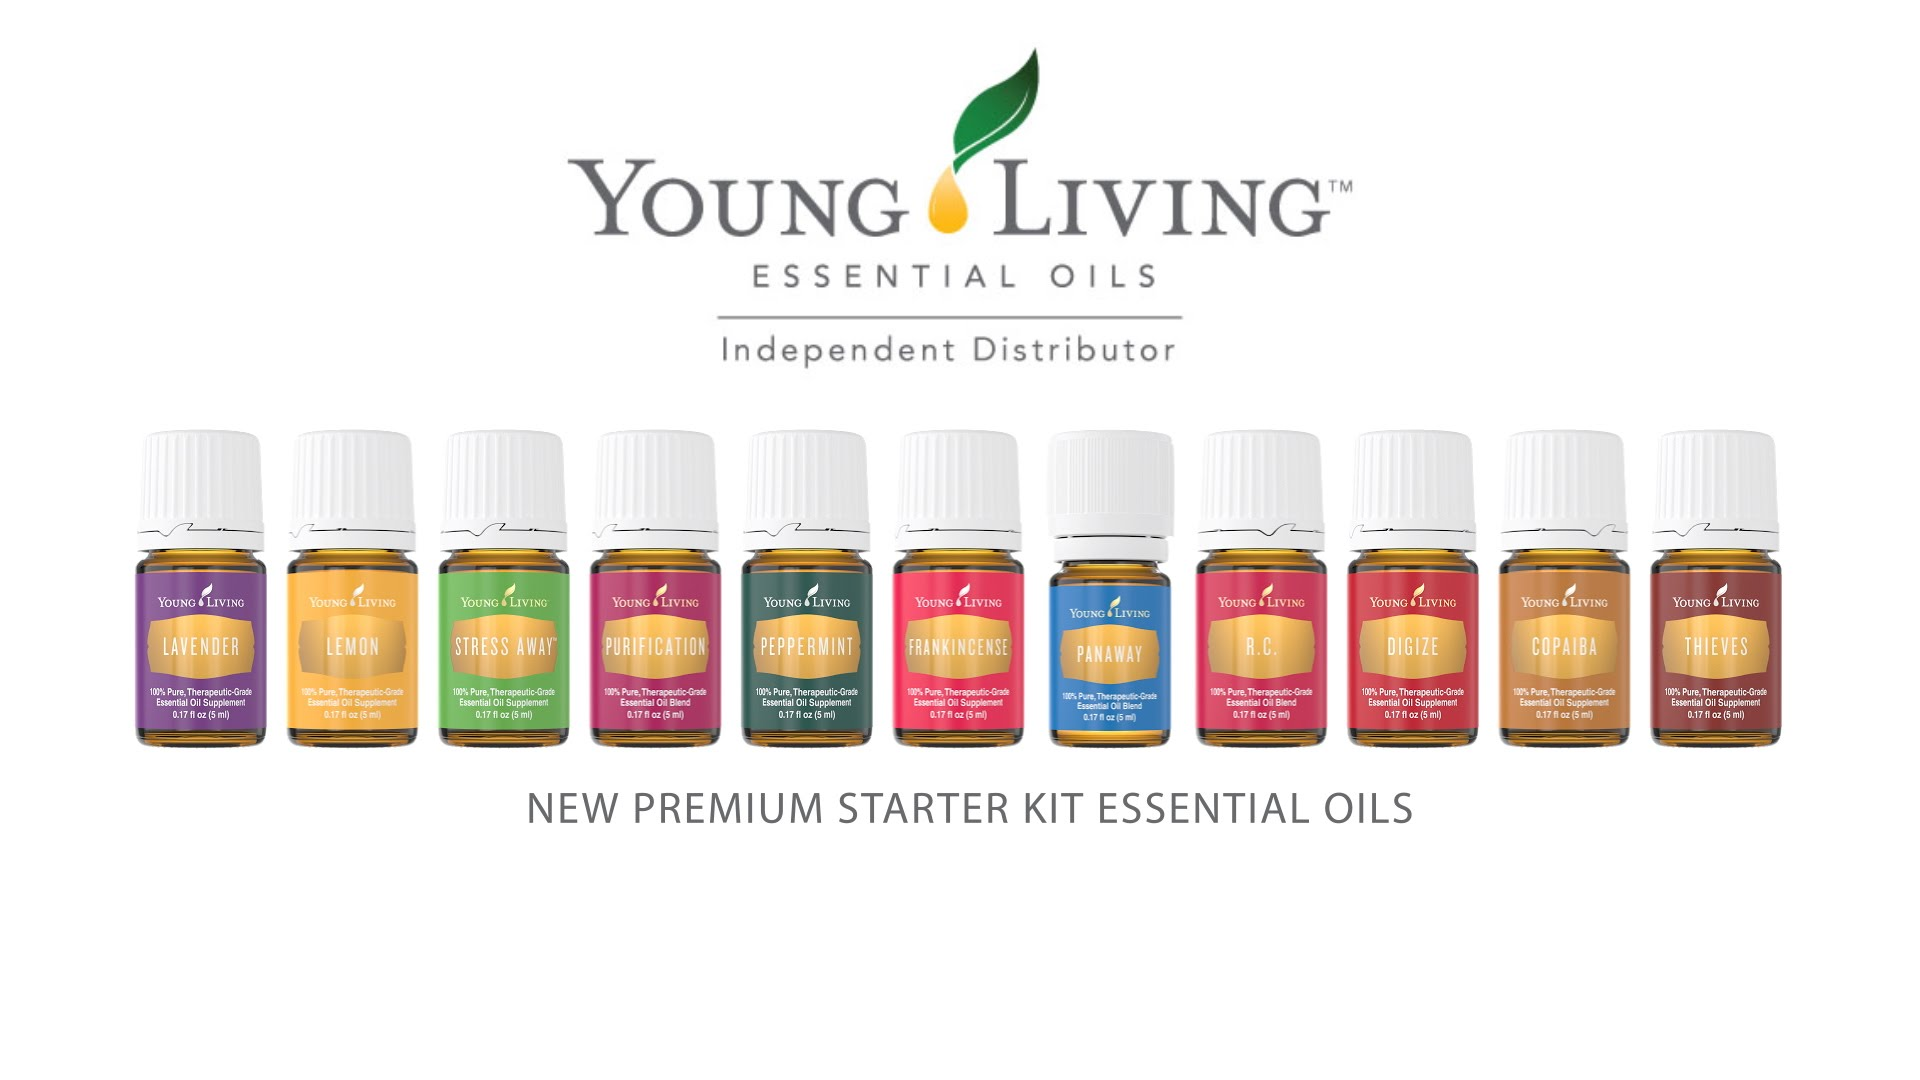 Essential oils can enhance so many areas of your daily life! They are often used for immune support, relaxation and sleep, stress relief, emotional balance, skin care and more! -